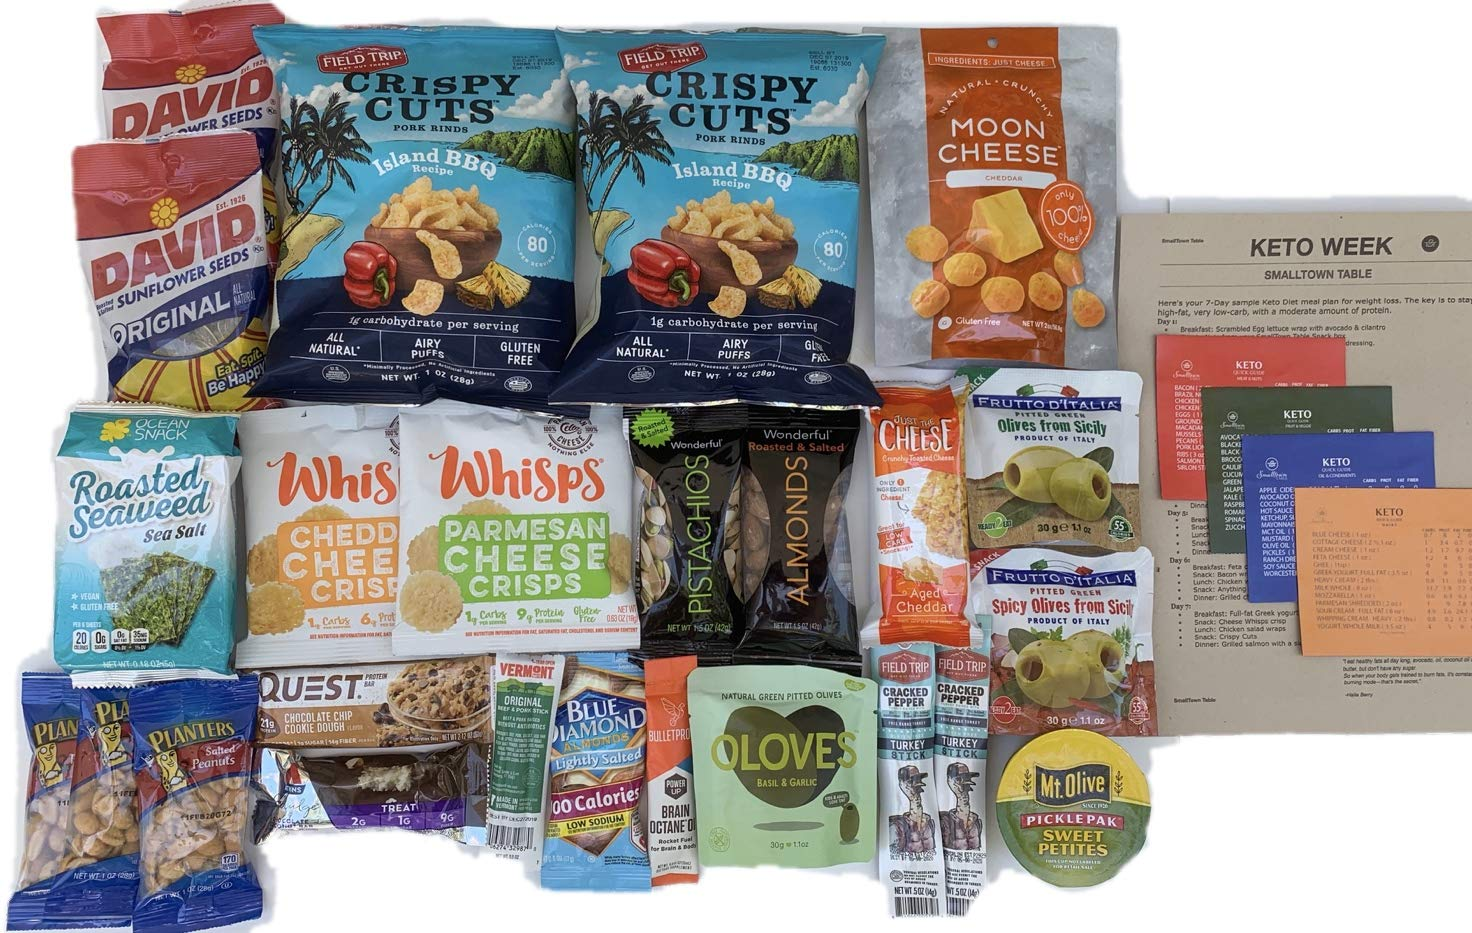 Keto Snacks Healthy Care Package - Keto Magnet Cheat Sheet 25 Count Gift Box - Keto Diet Plan Week, Ultra Low Carb, Ketogenic, Paleo Kit With A Huge Variety of To Go Foods